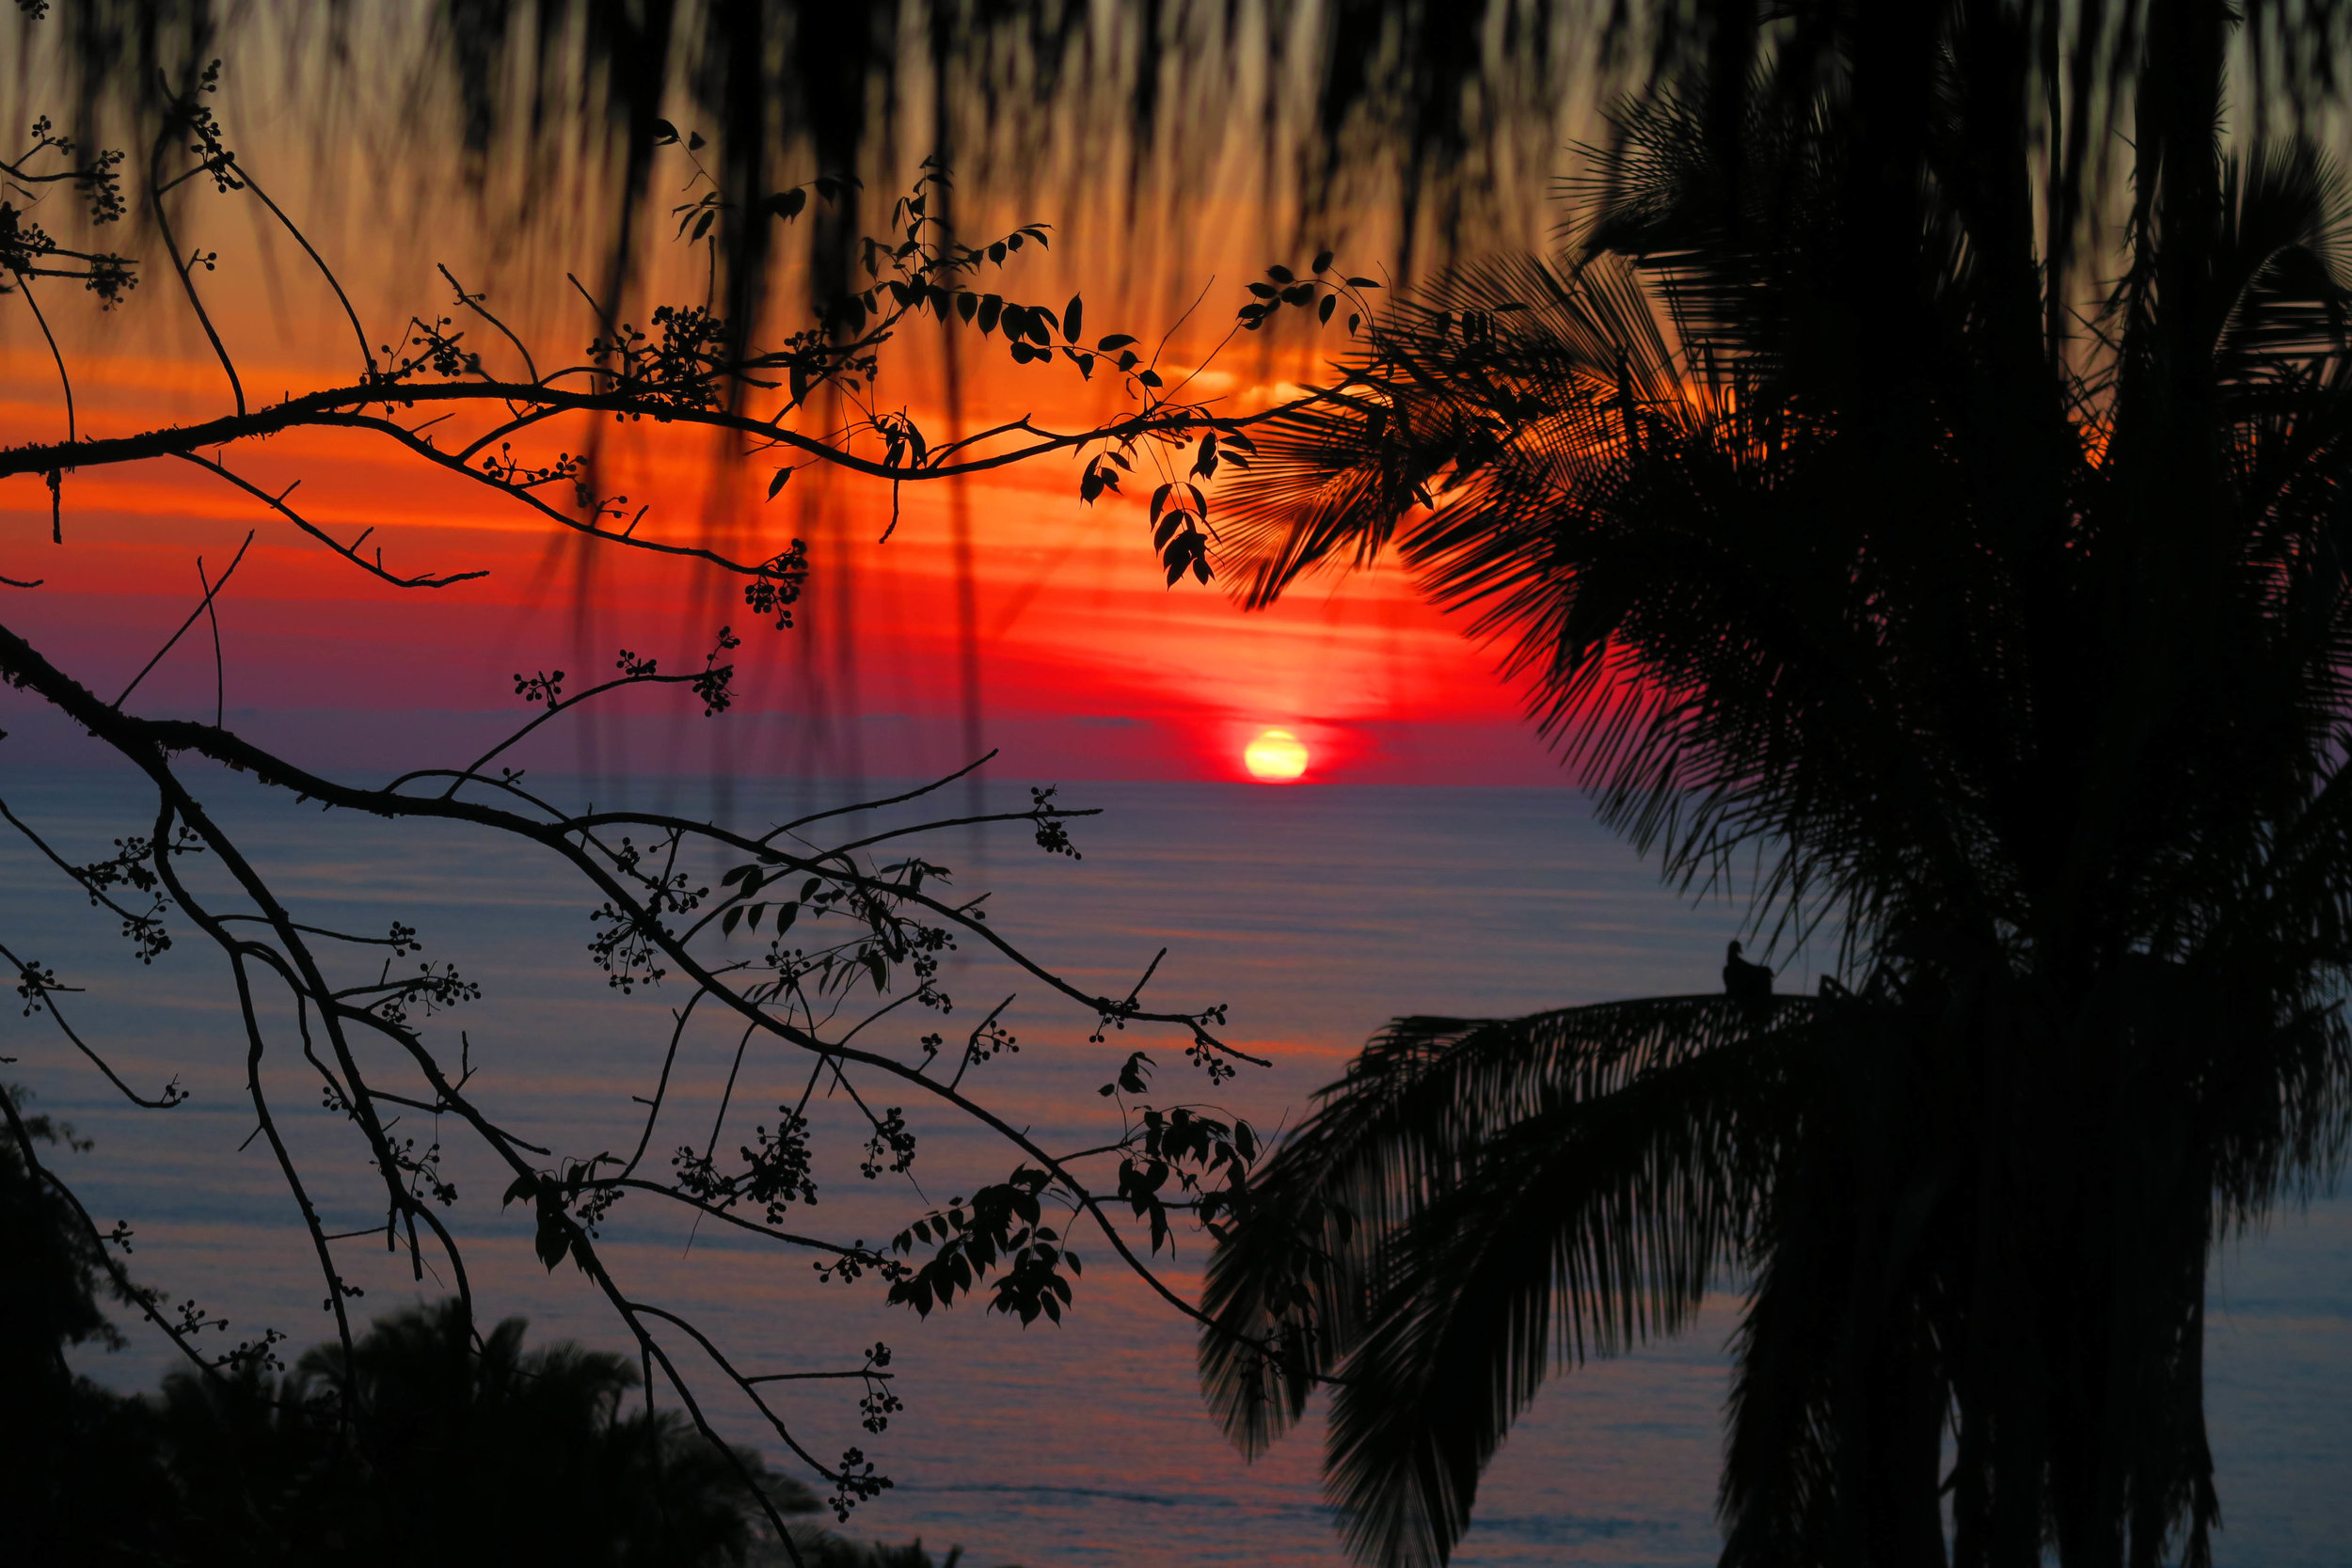 You have to experience the sunset at Haramara for yourself to really understand.